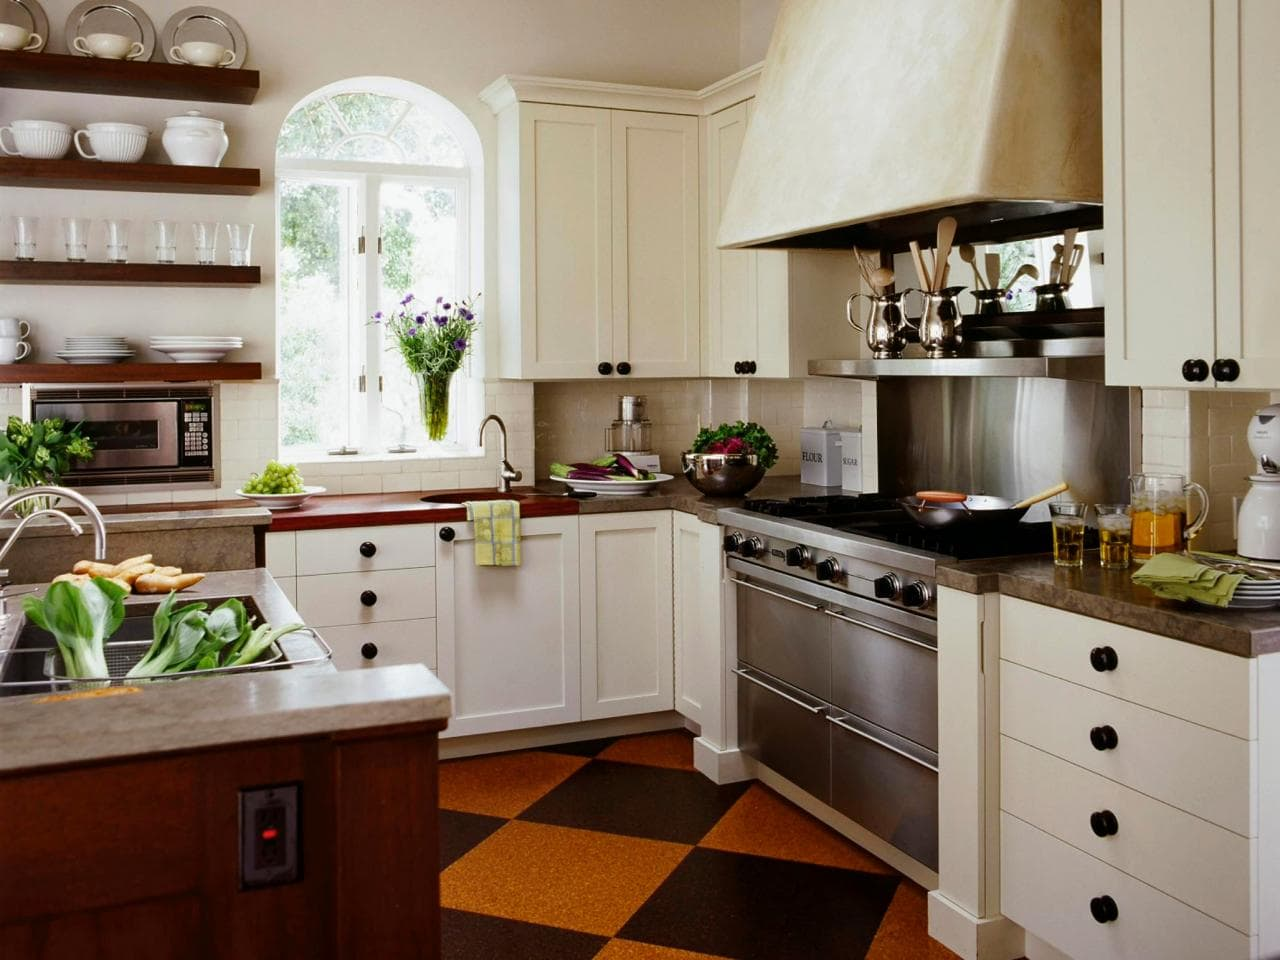 Renovate your kitchen with new styles | Top Home Zones